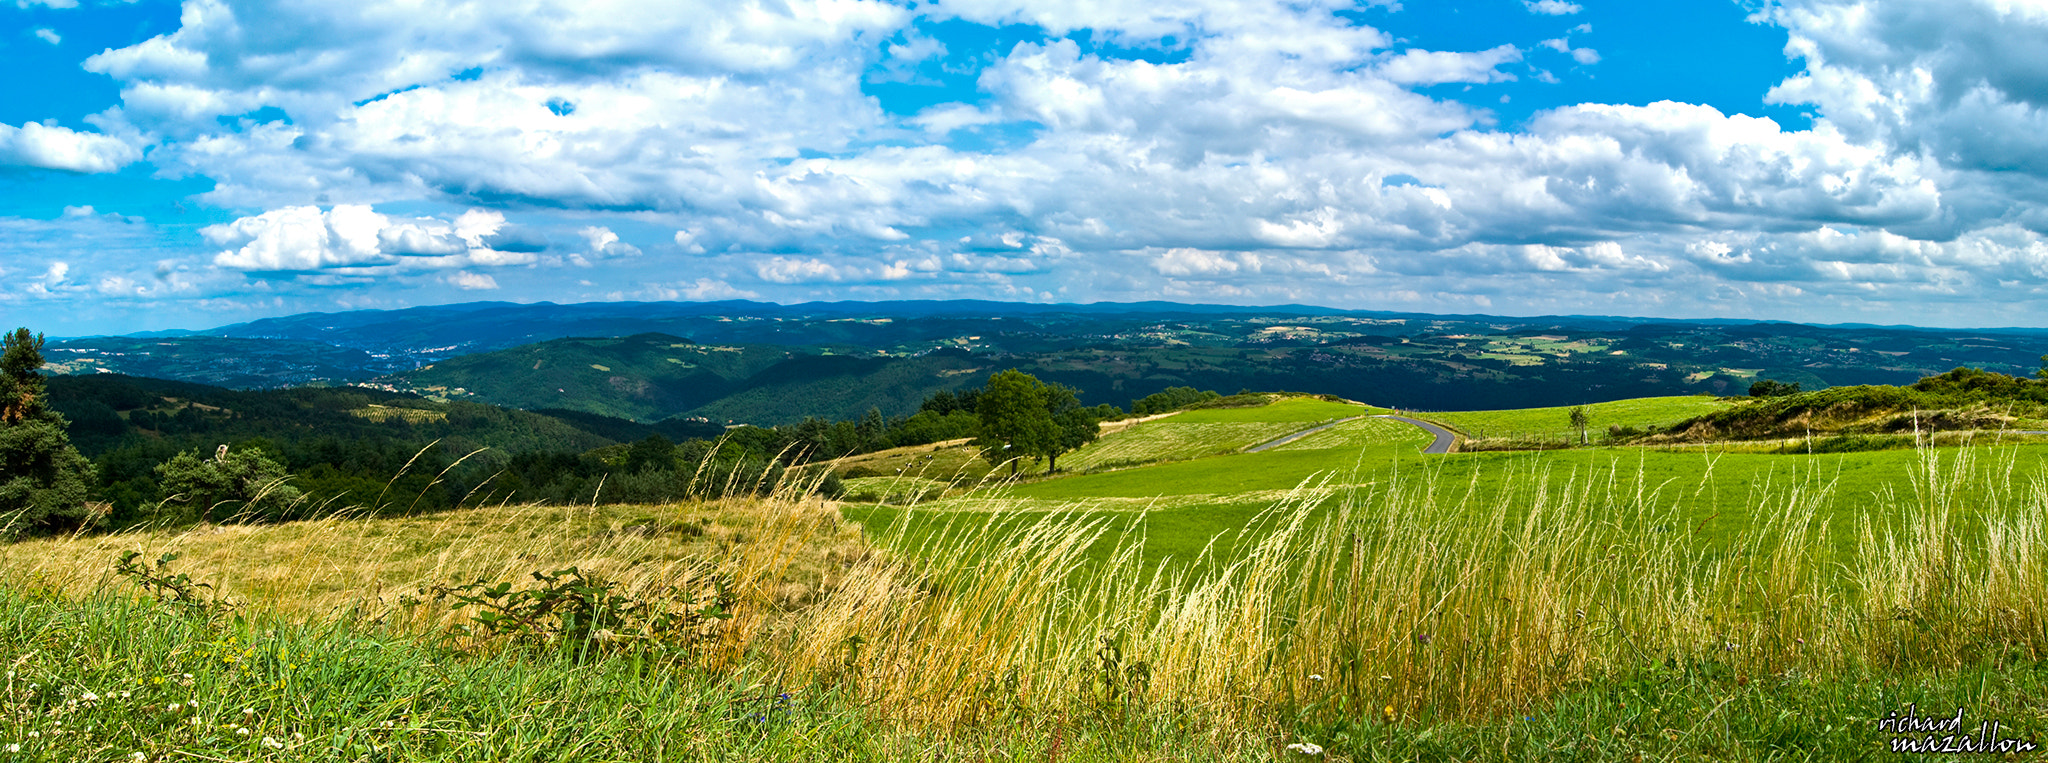 Photograph Panorama of meadow by RMPhotographie  on 500px